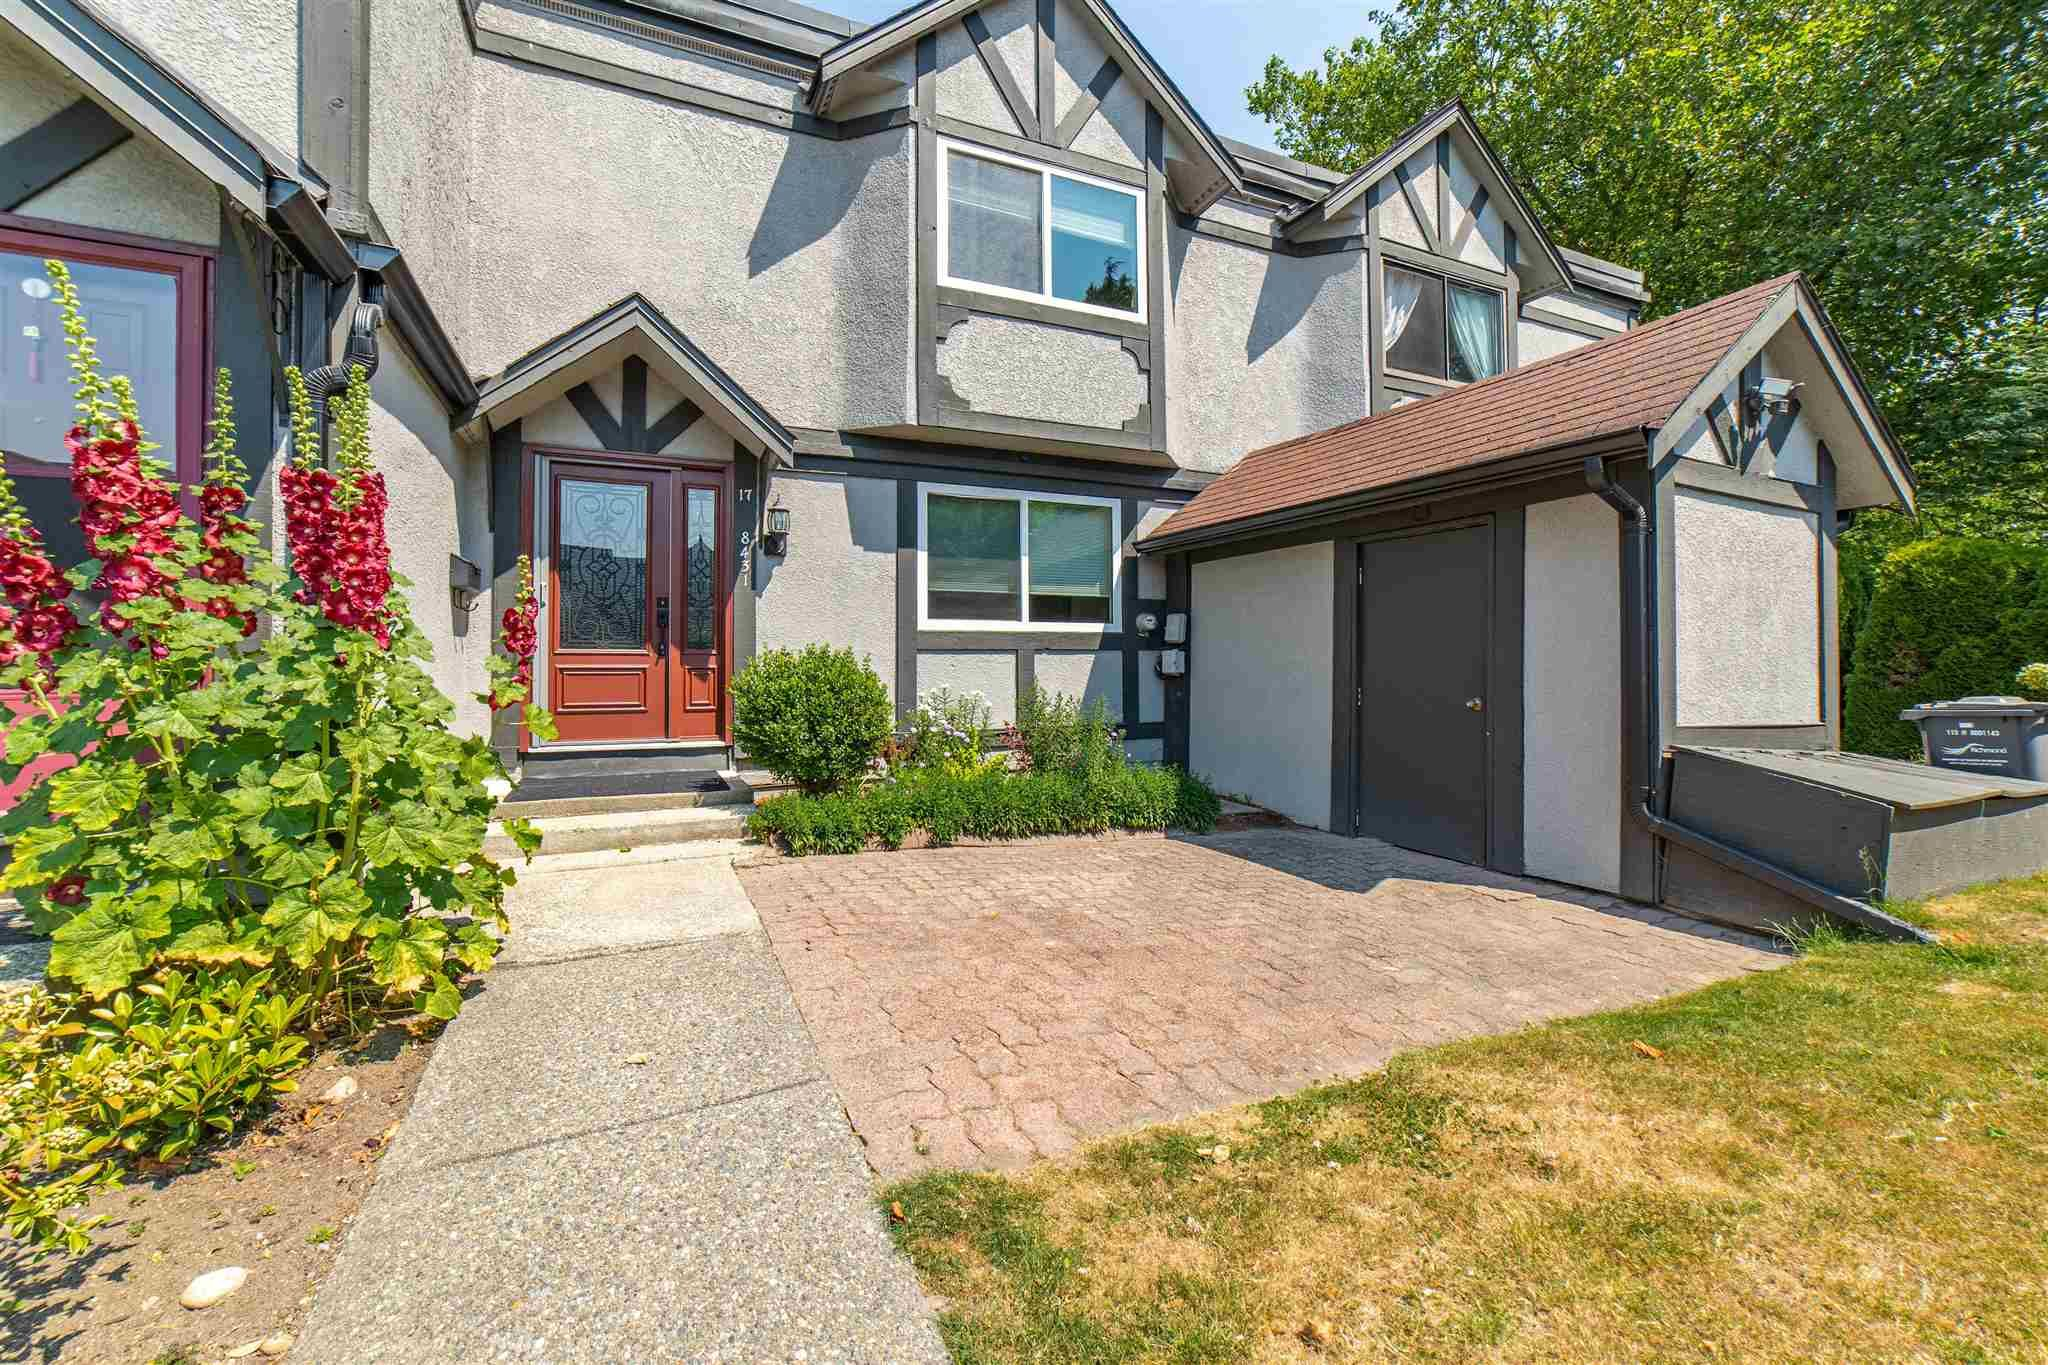 """Main Photo: 17 8431 RYAN Road in Richmond: South Arm Townhouse for sale in """"CAMBRIDGE PLACE"""" : MLS®# R2599088"""